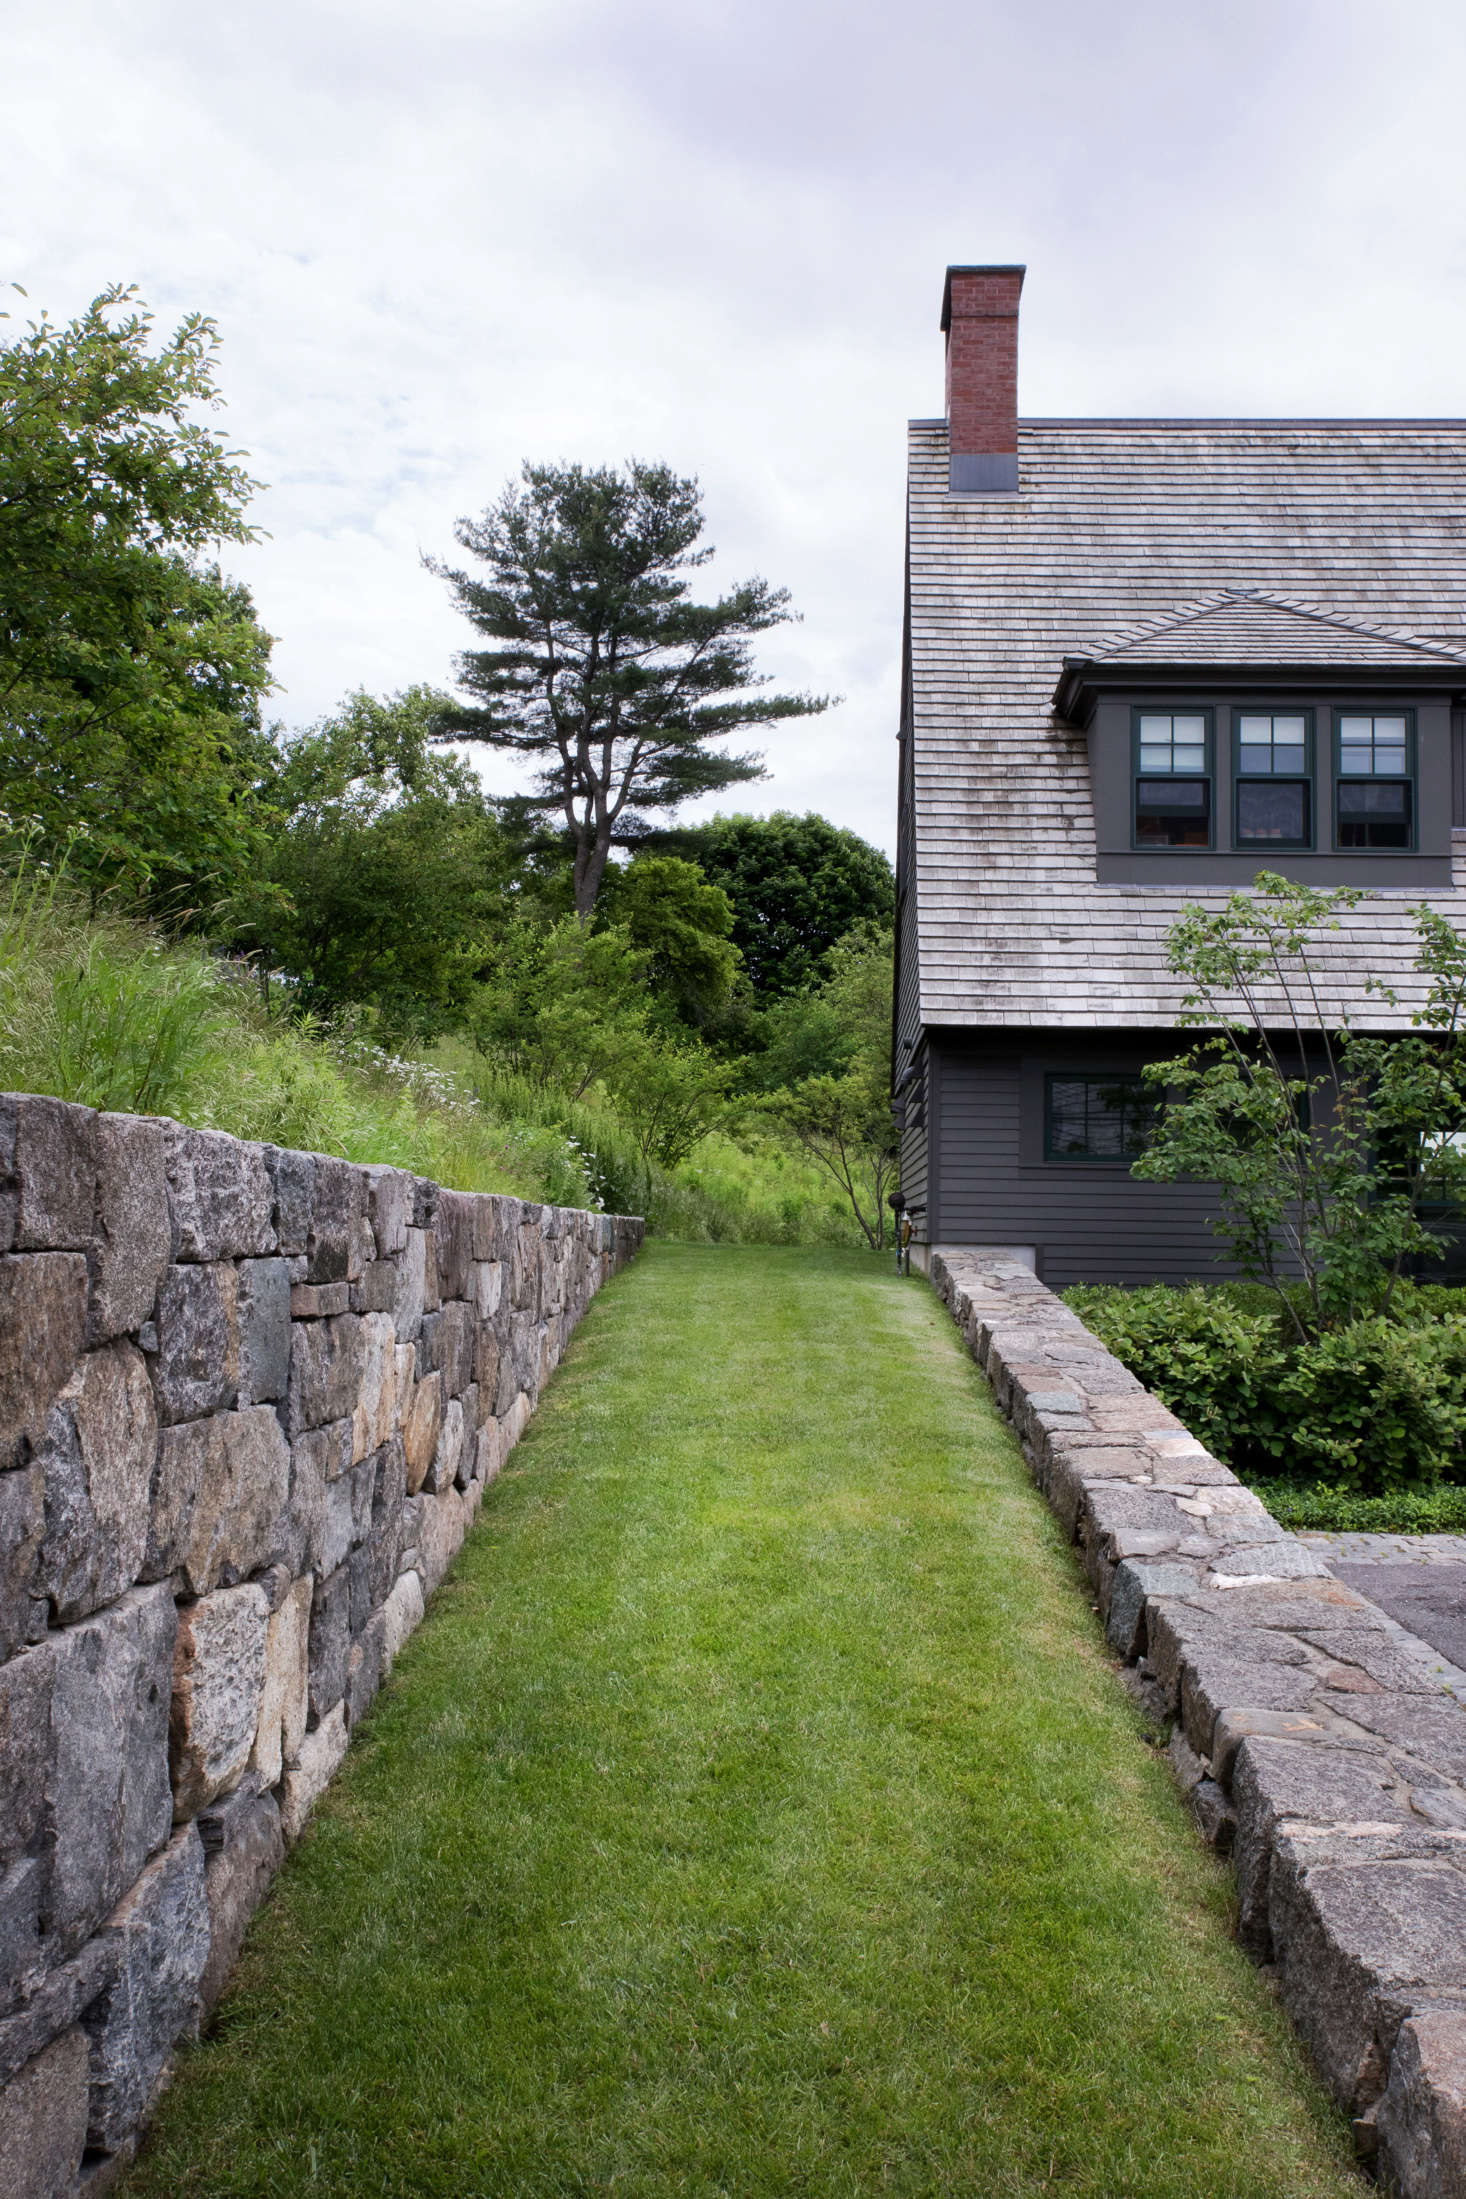 A lawn ramp, built with the type of large fieldstones typically used in farms, connects the entry level of the house to the upper outdoor living areas, where another retaining wall frames views of working farm fields. Mature trees were preserved whenever possible to help site the new construction and landscape within its setting. Visible in the distance is one of the largest pines found on the property, which was preserved and pruned.